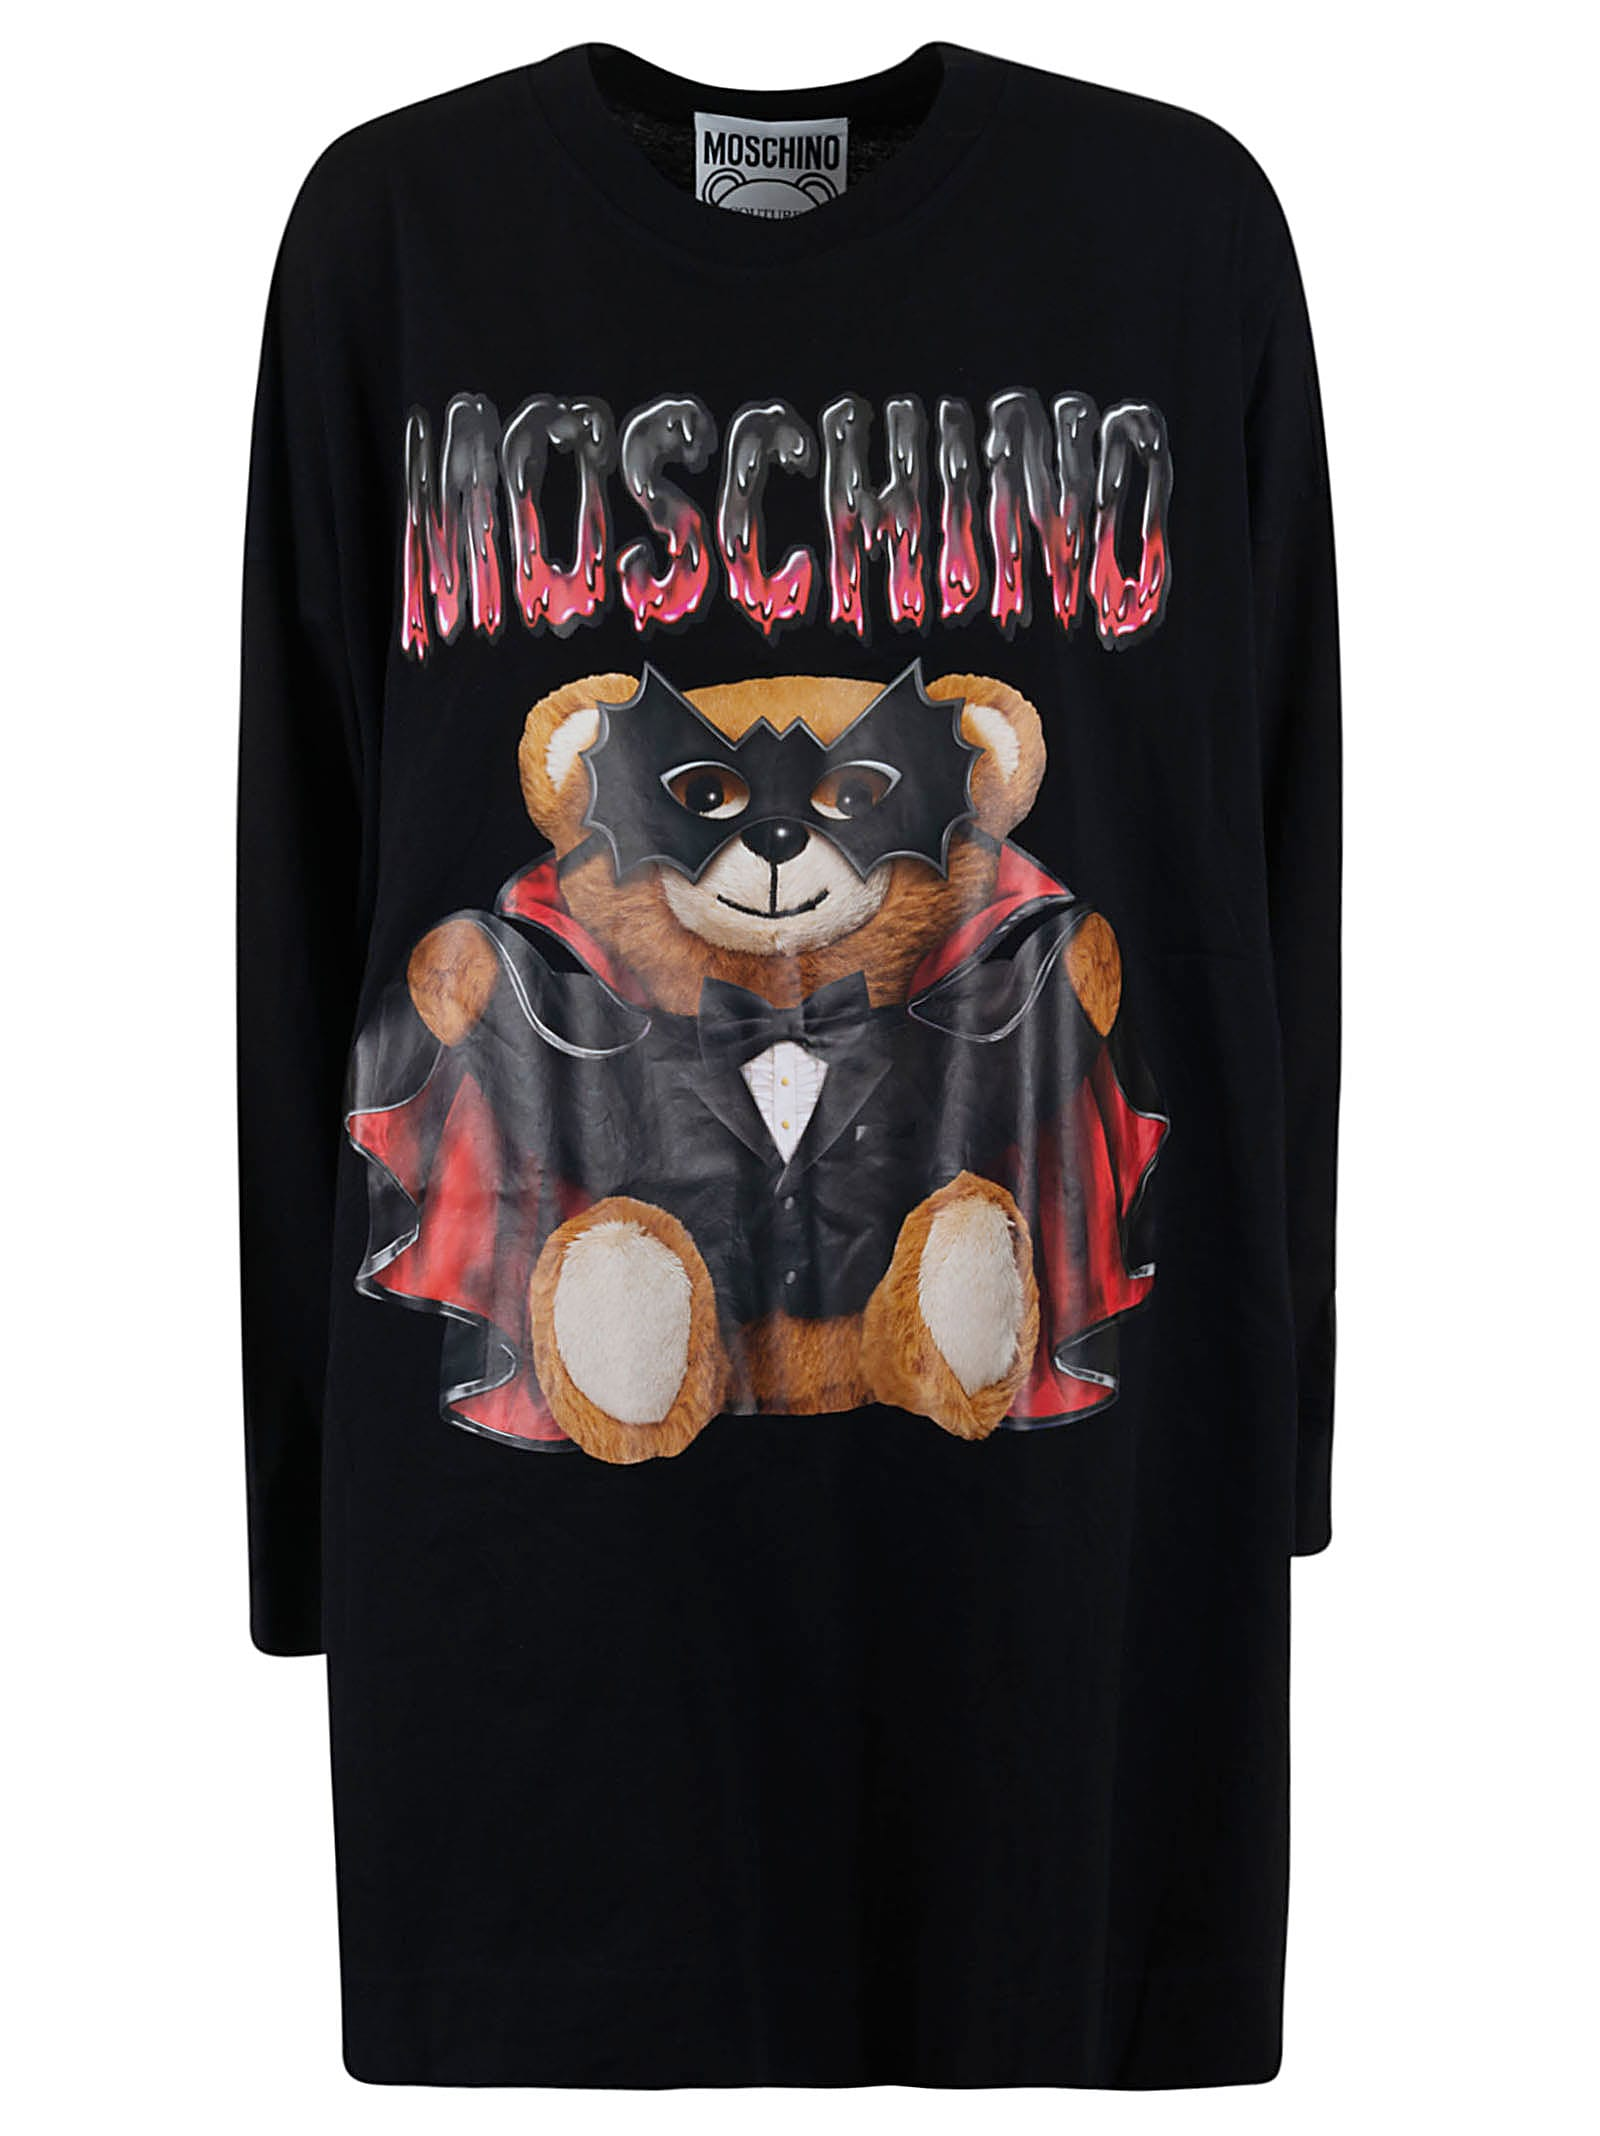 Buy Moschino Teddy Bat Printed Oversized Dress online, shop Moschino with free shipping